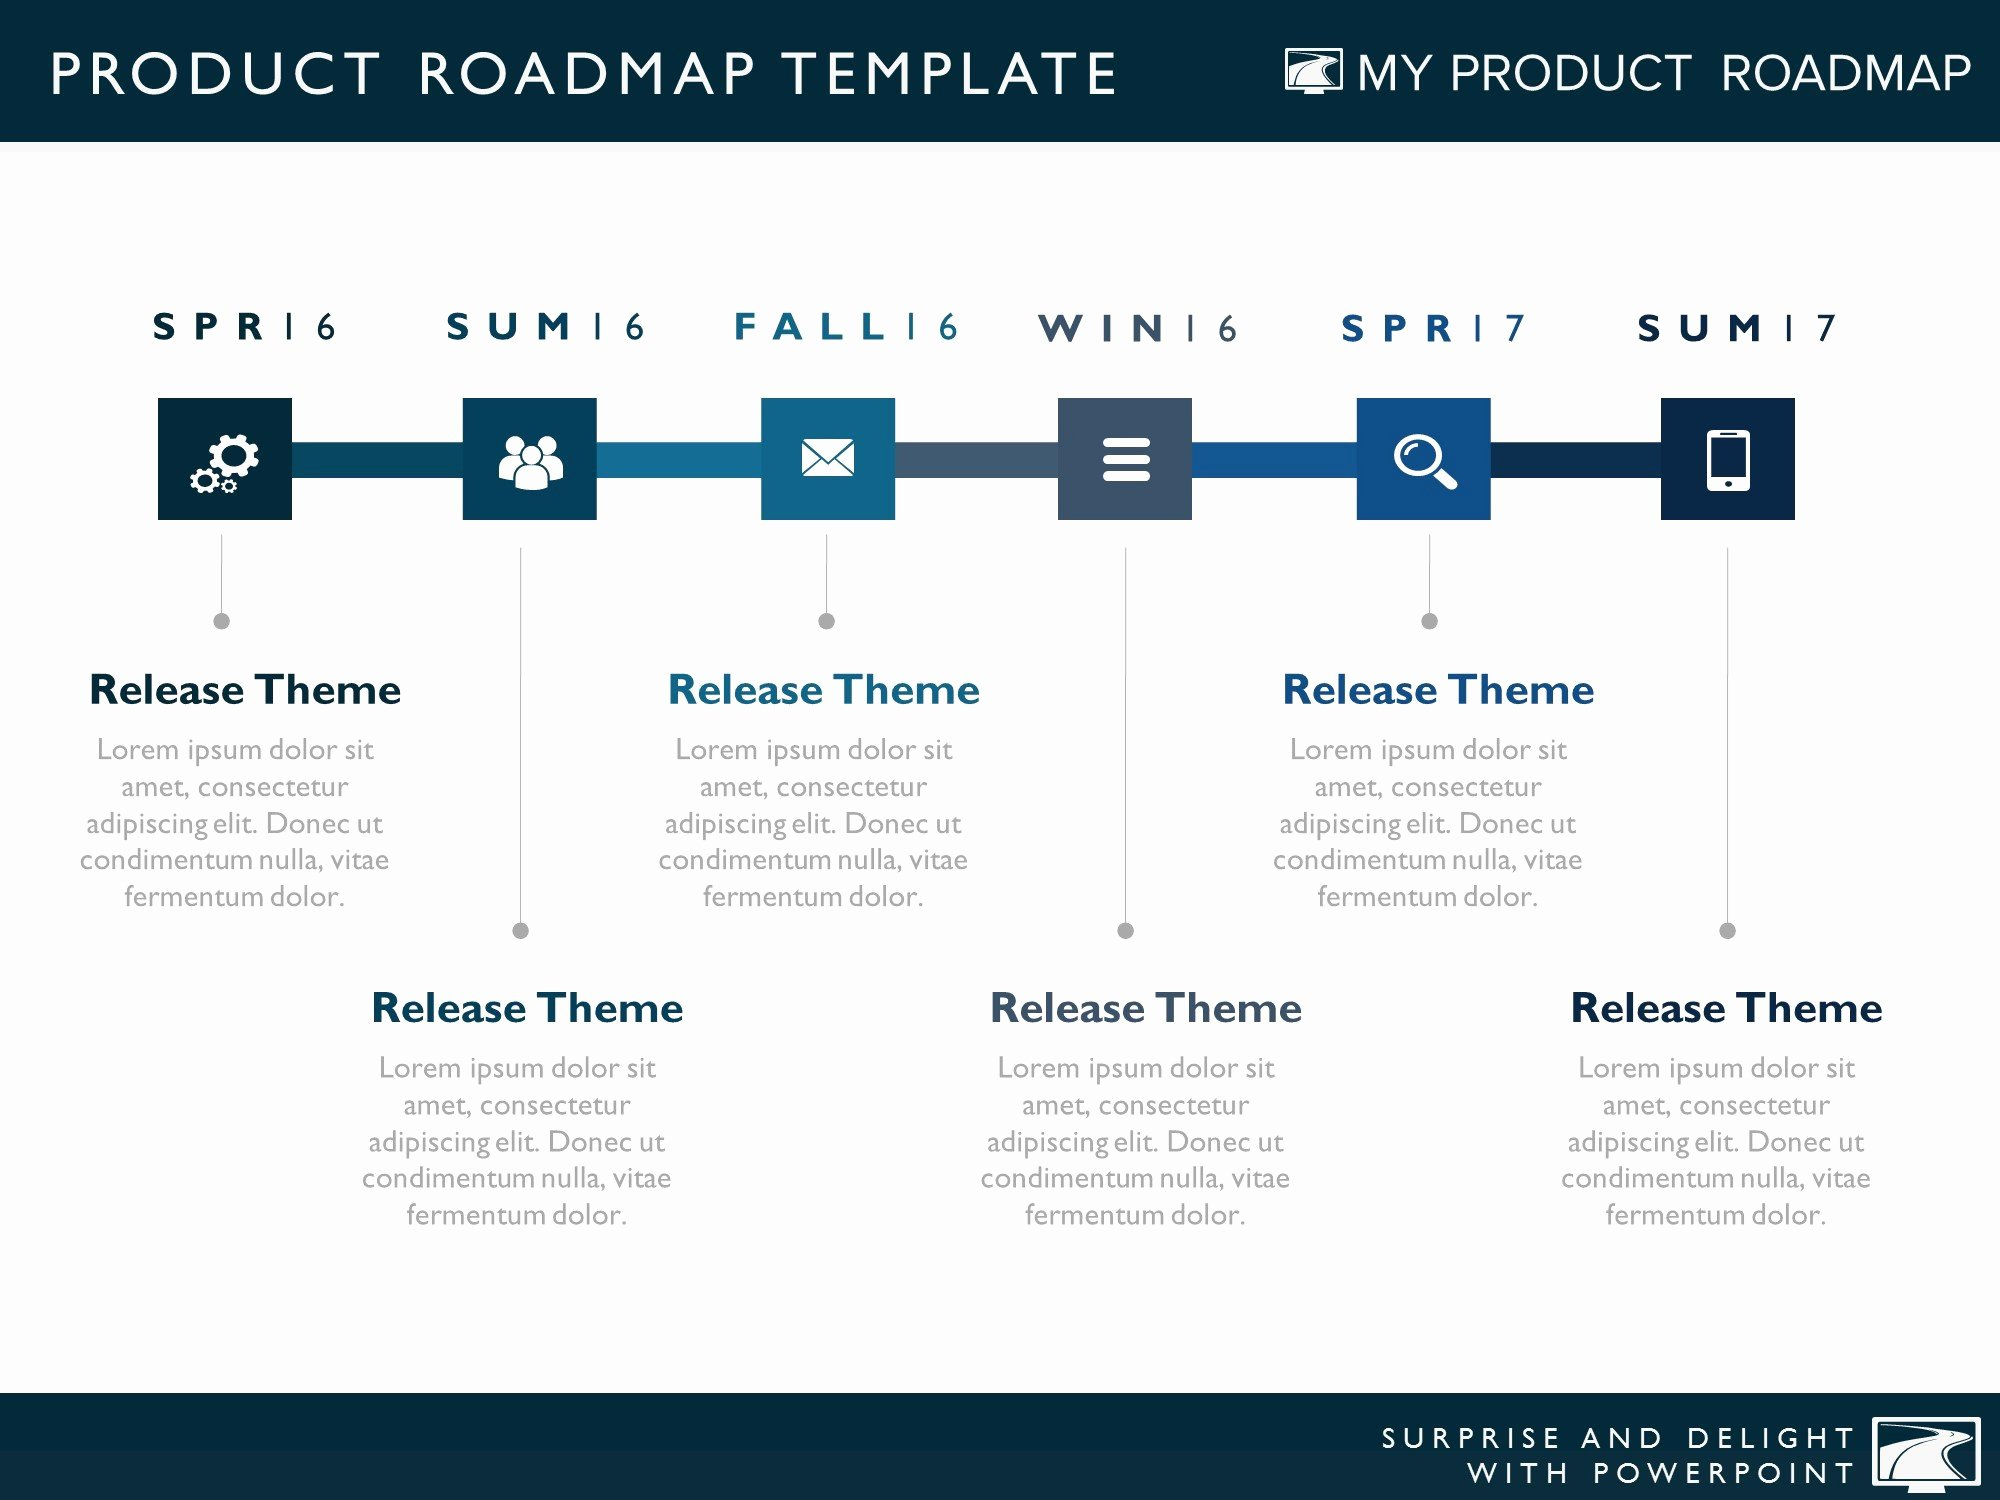 Road Map Template Ppt Fresh Product Roadmap Templates for Powerpoint